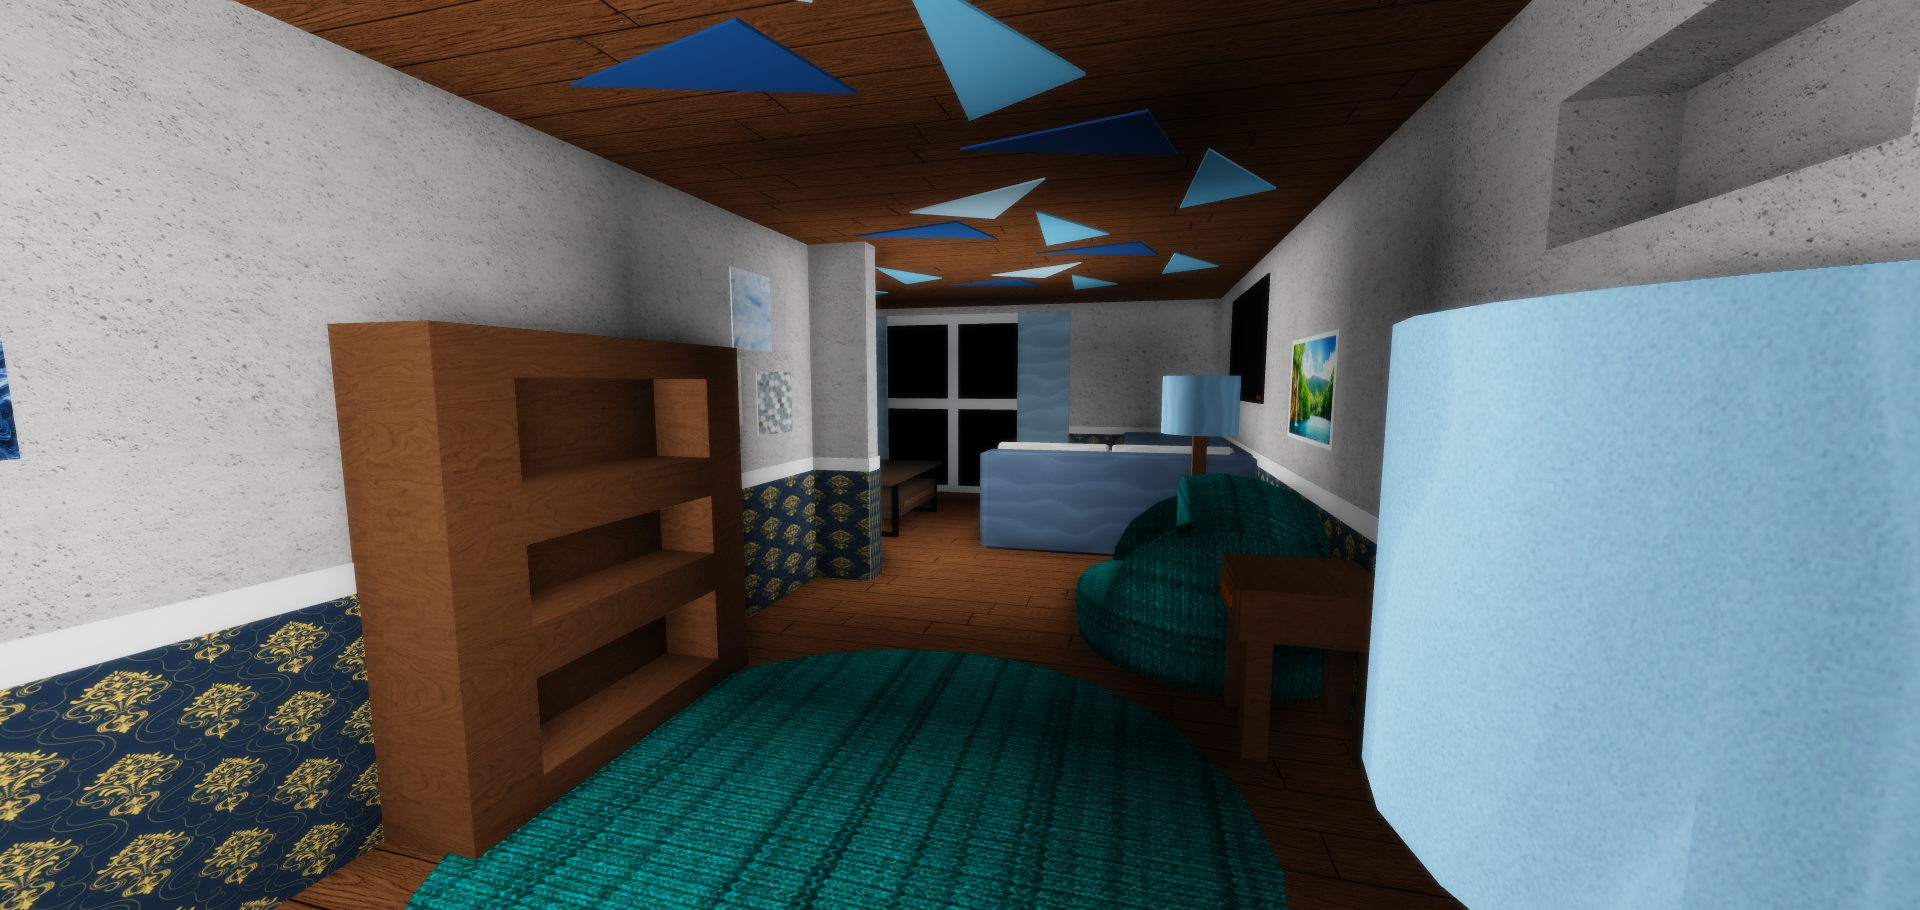 SOLD) Hotel Room Interior For Only 200 $! - Public Asset